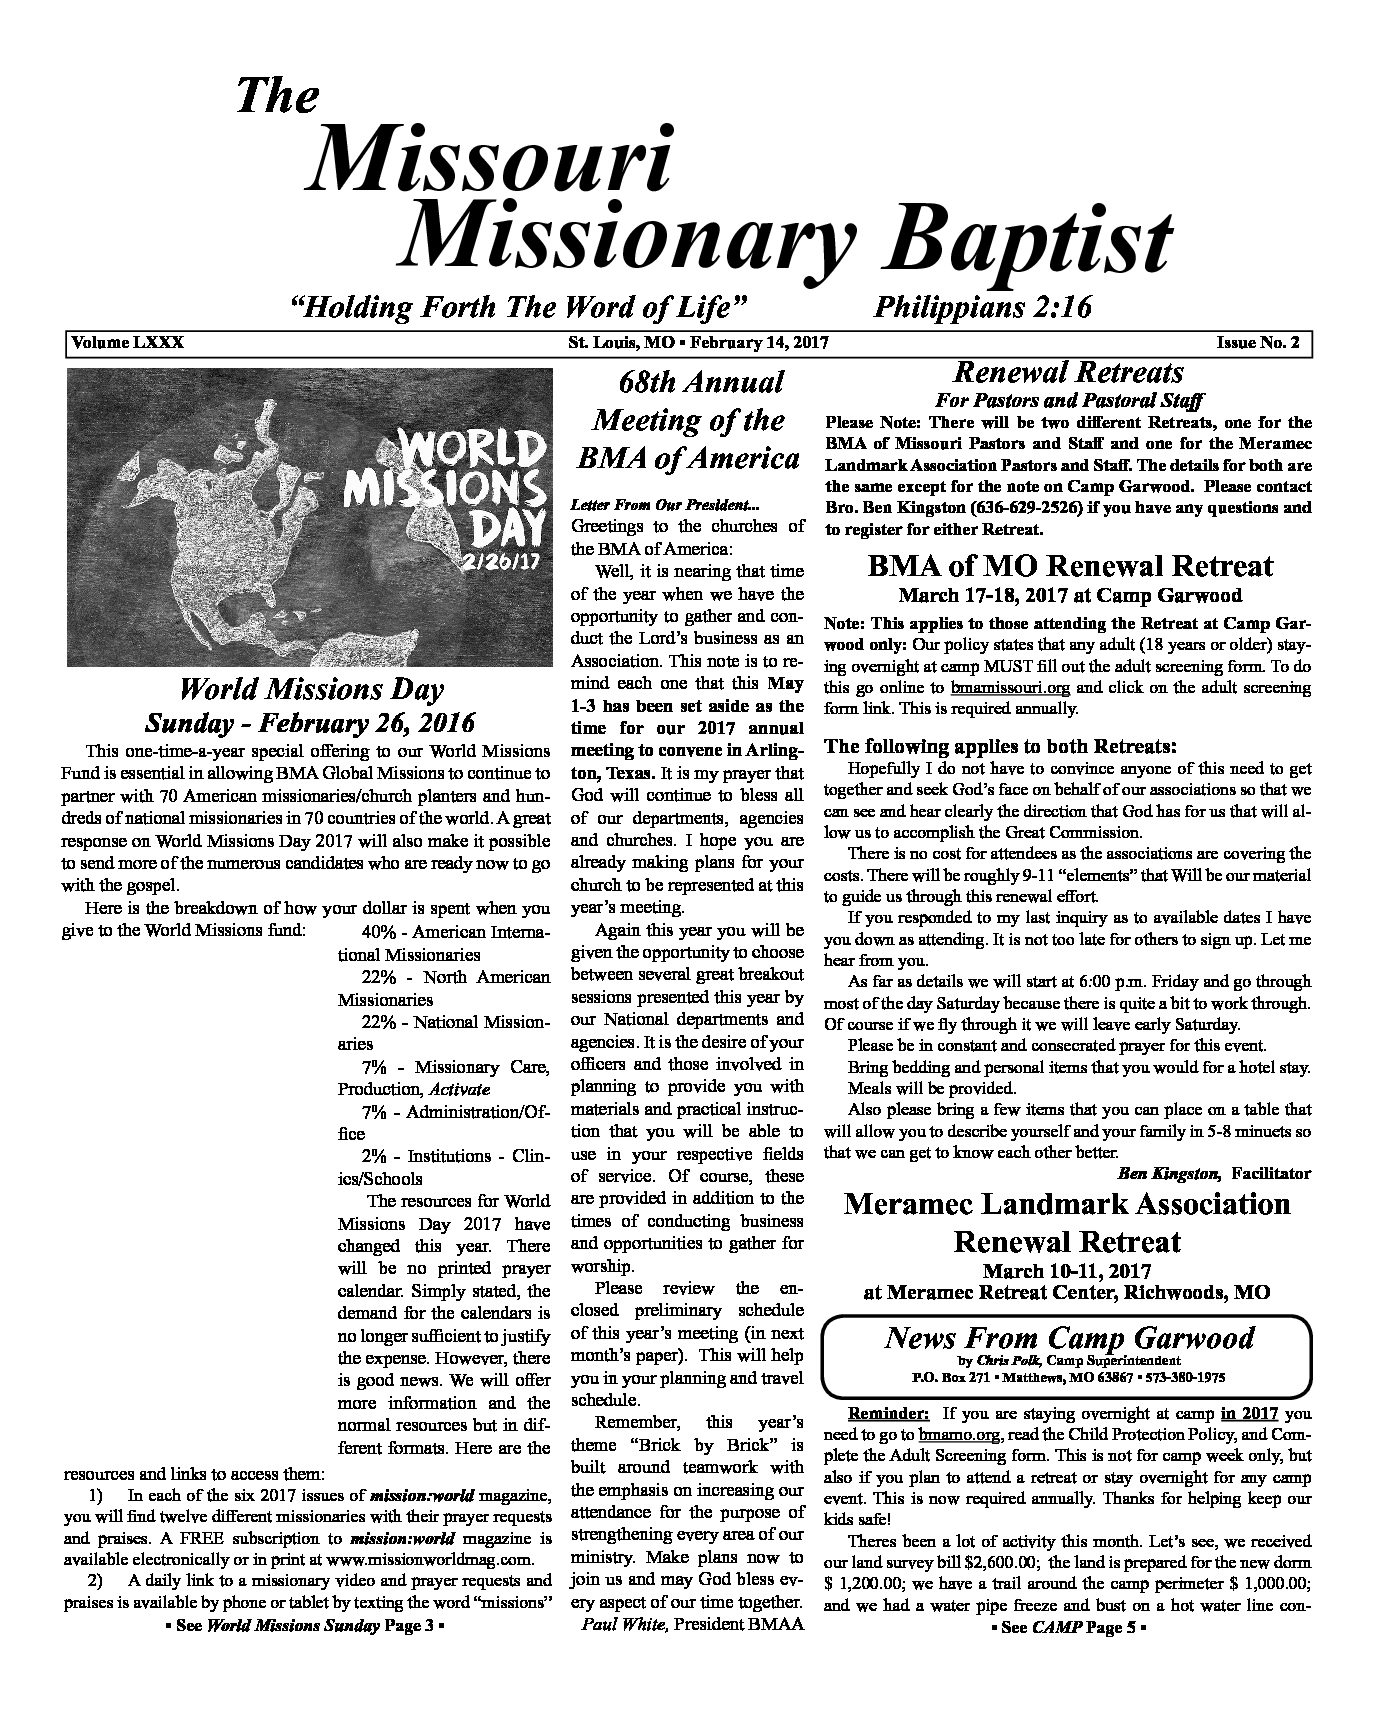 February Issue of the Missouri Missionary Baptist